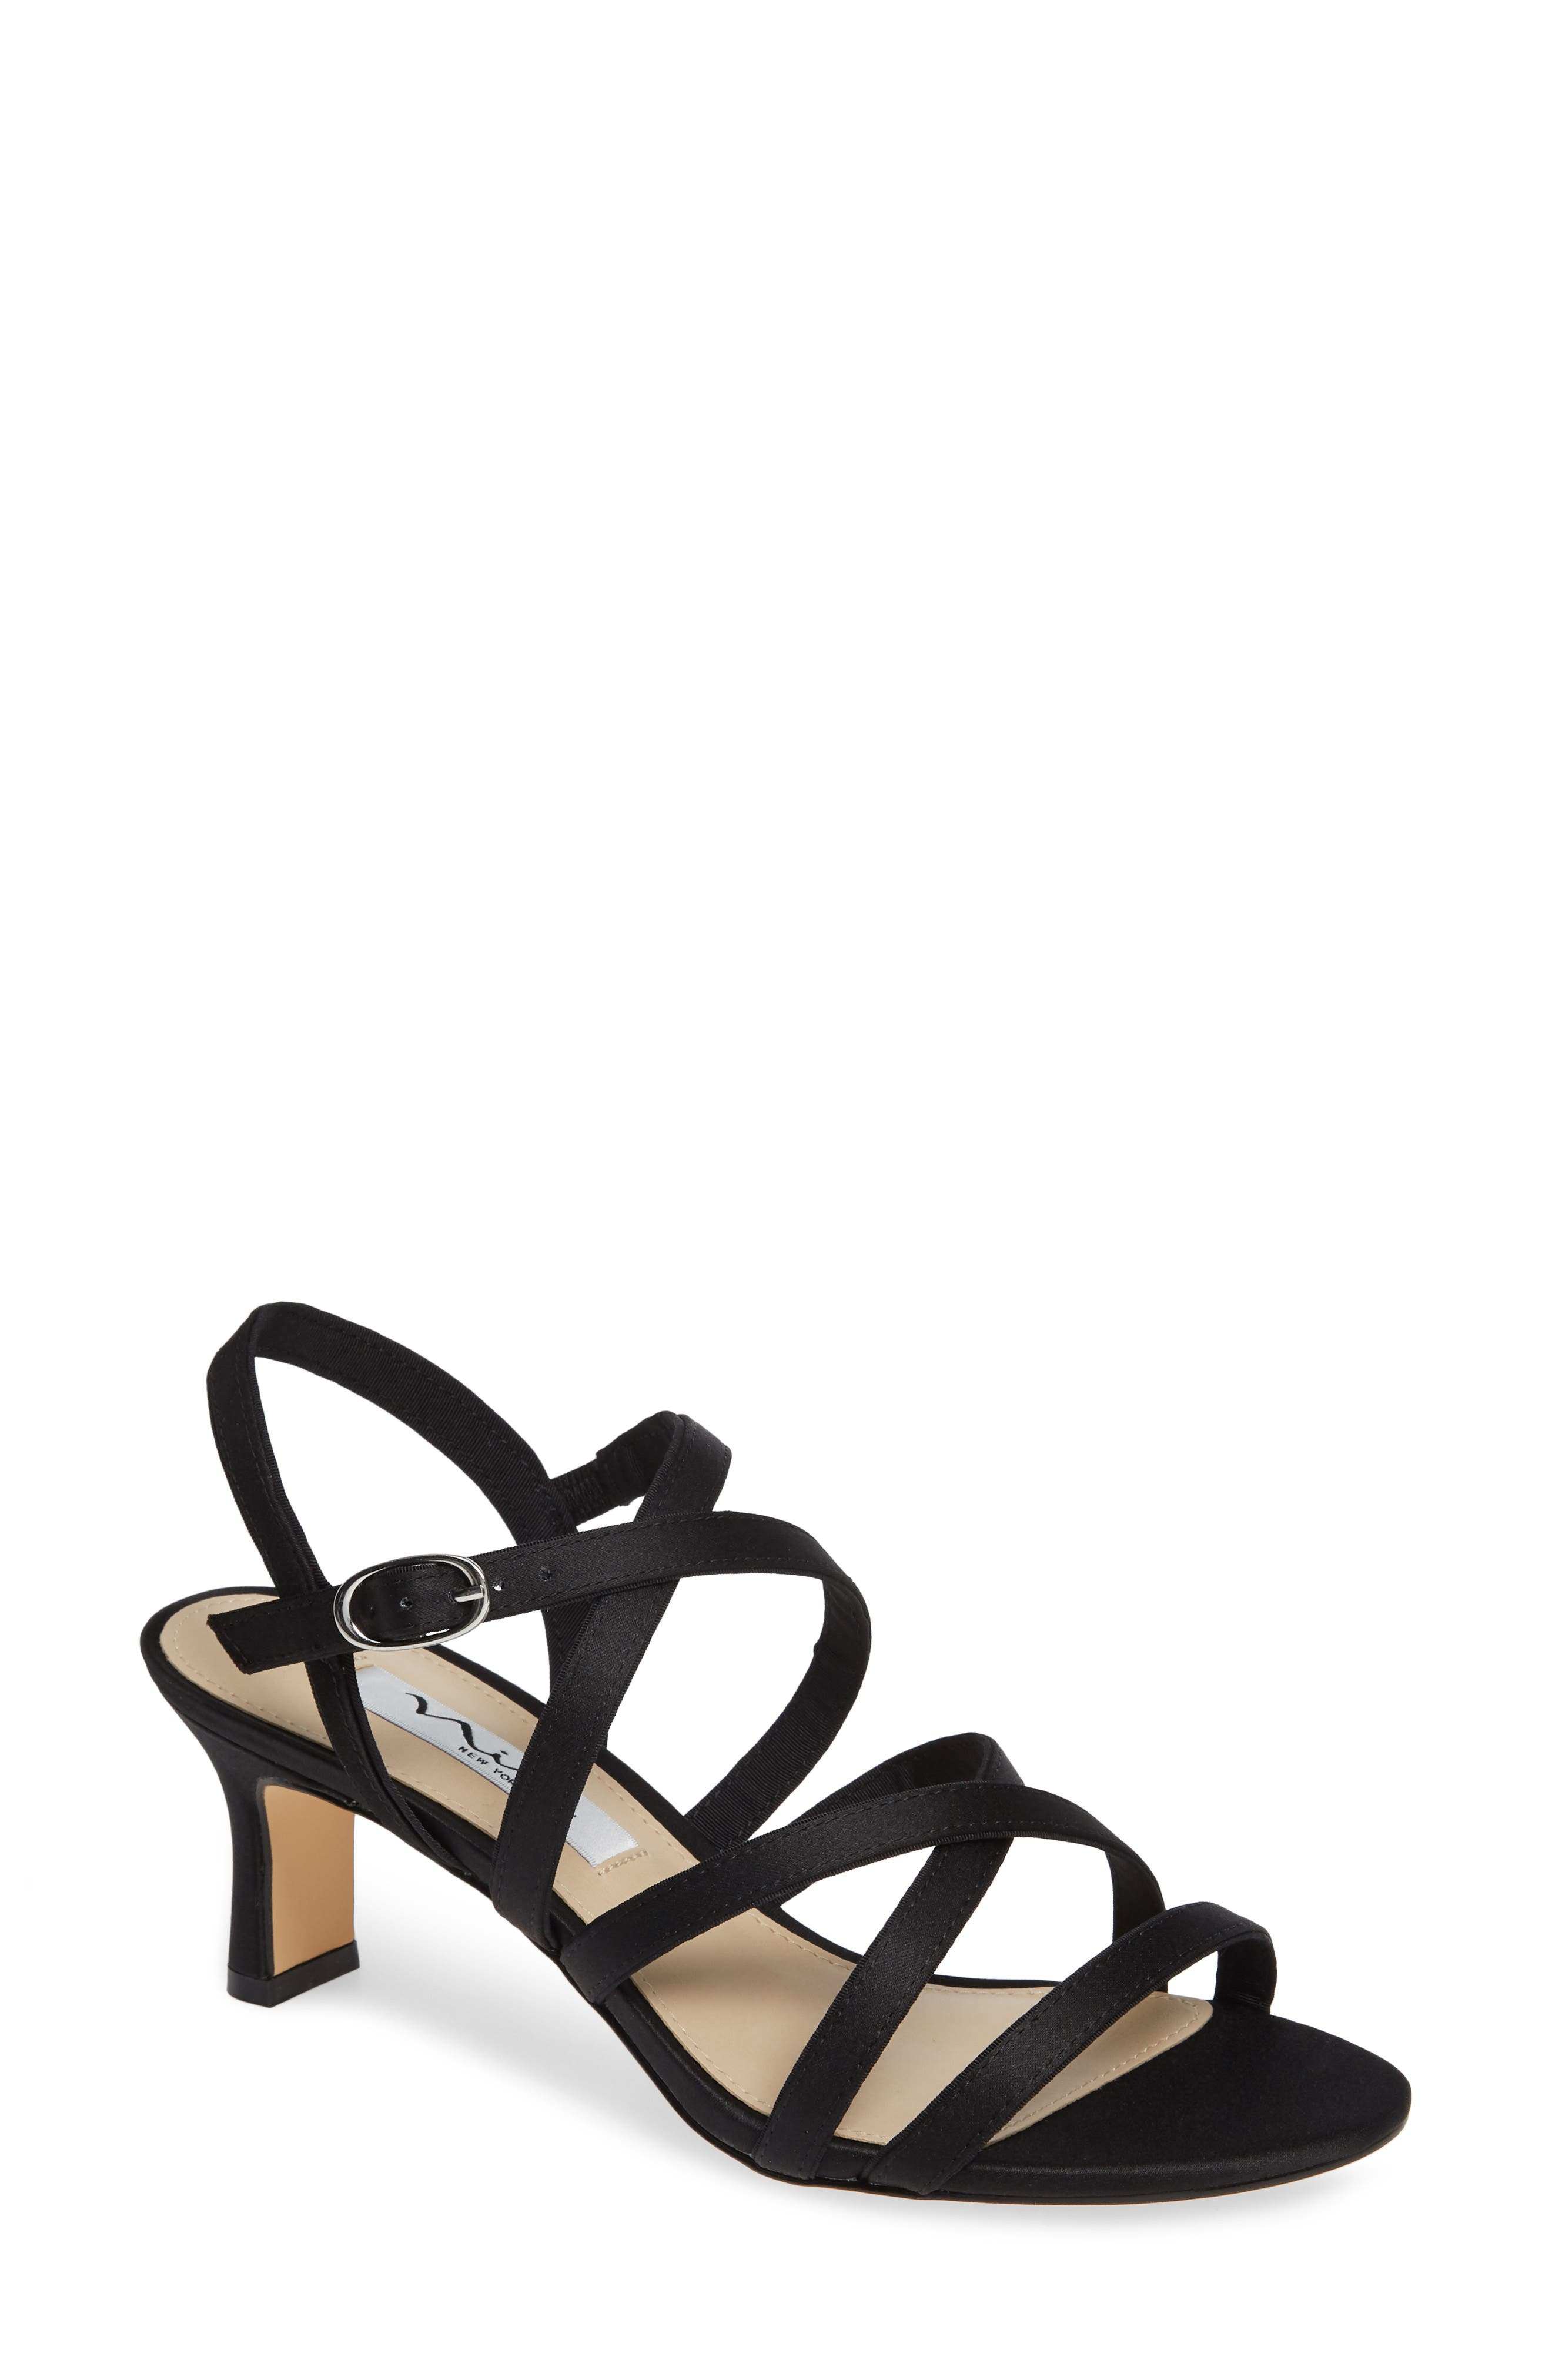 Genaya Strappy Evening Sandal,                             Main thumbnail 1, color,                             BLACK SATIN